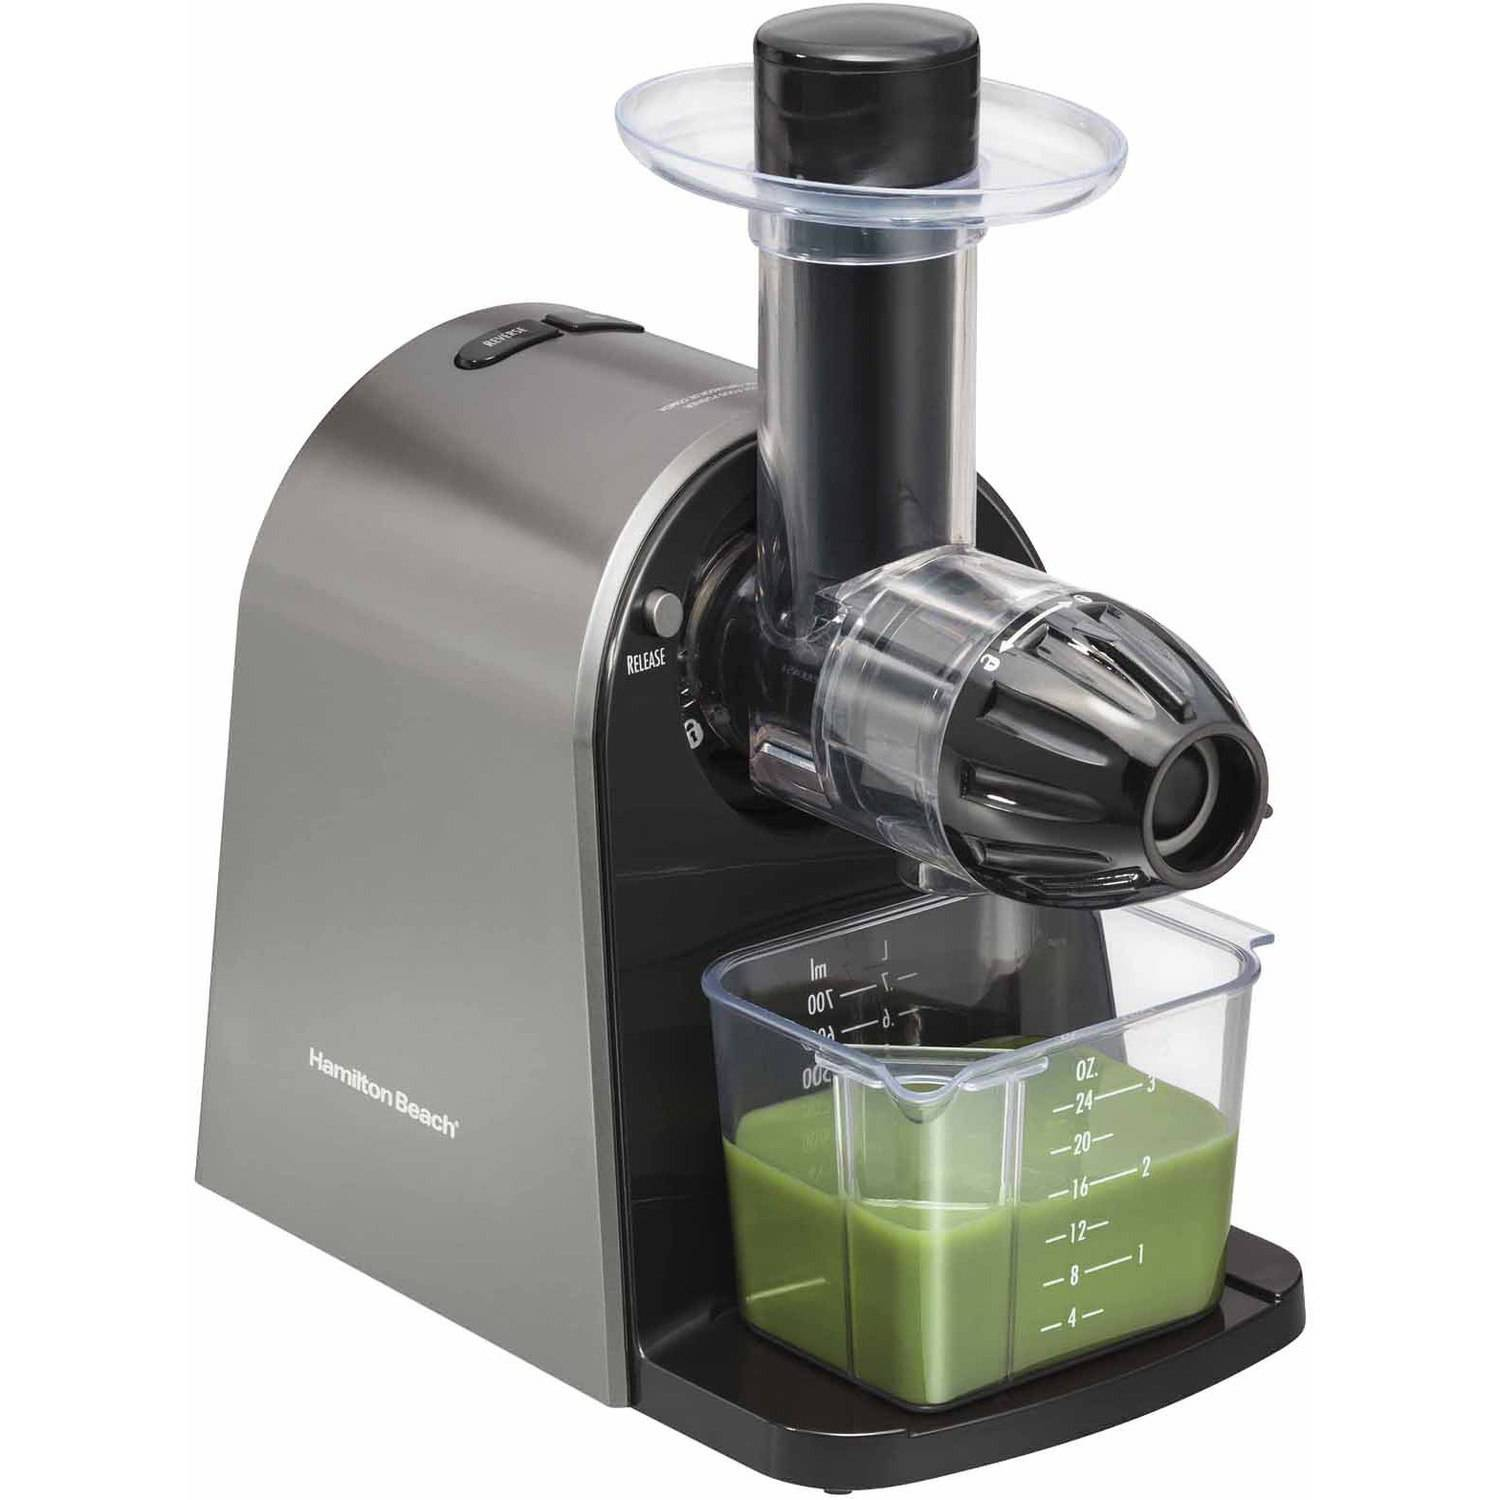 Slow Juicer Juice : Cold Press Juicer Machine - Masticating Juicer Slow Juice Extractor Maker Electric Juicing ...